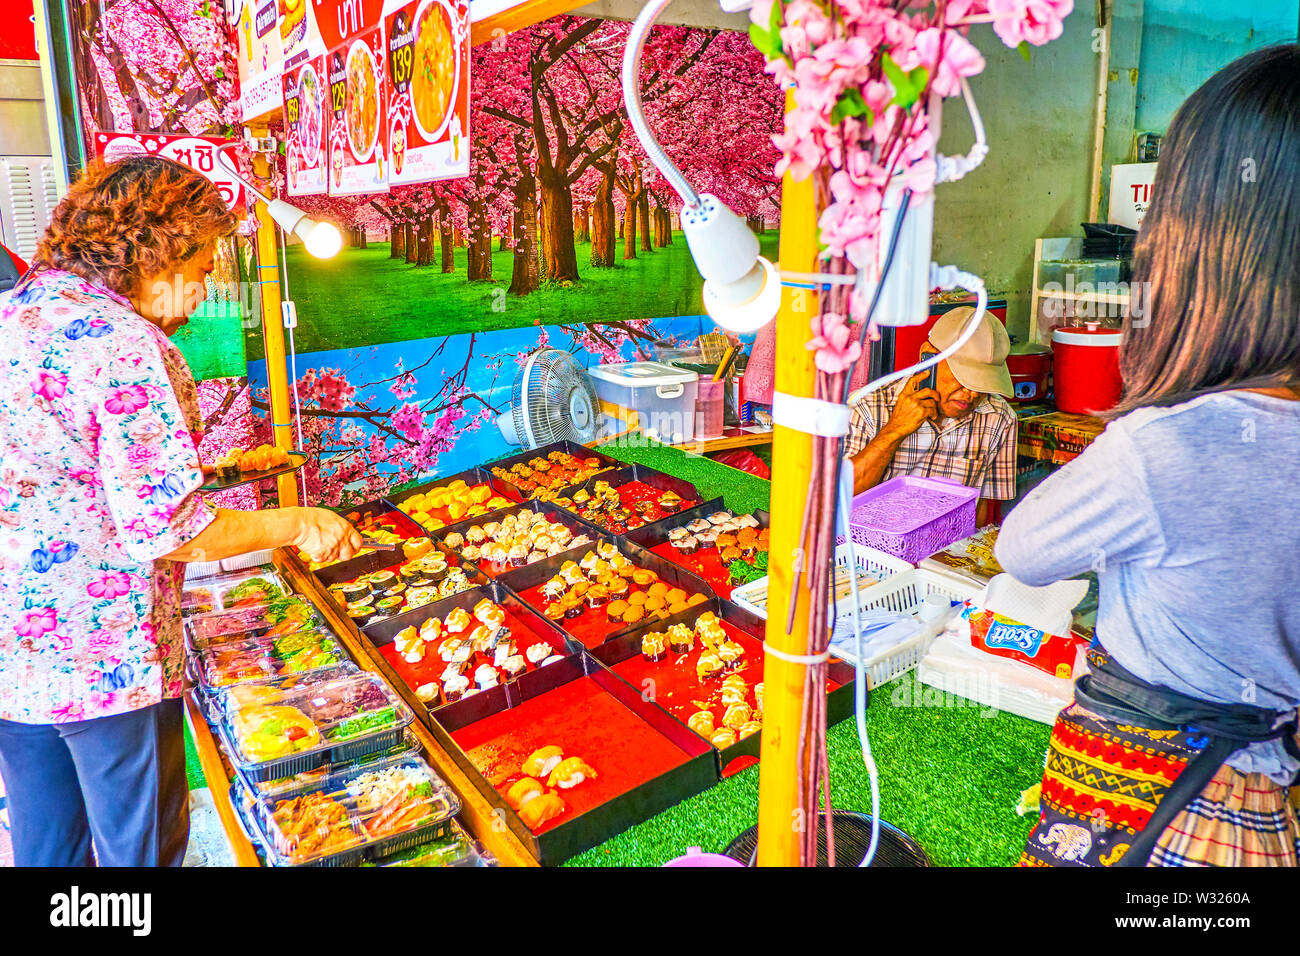 BANGKOK, THAILAND - APRIL 22, 2019: The small outdoor sushi bar with variety of rolls to take away, located in Charkrapong Road, Banglampoo, on April - Stock Image